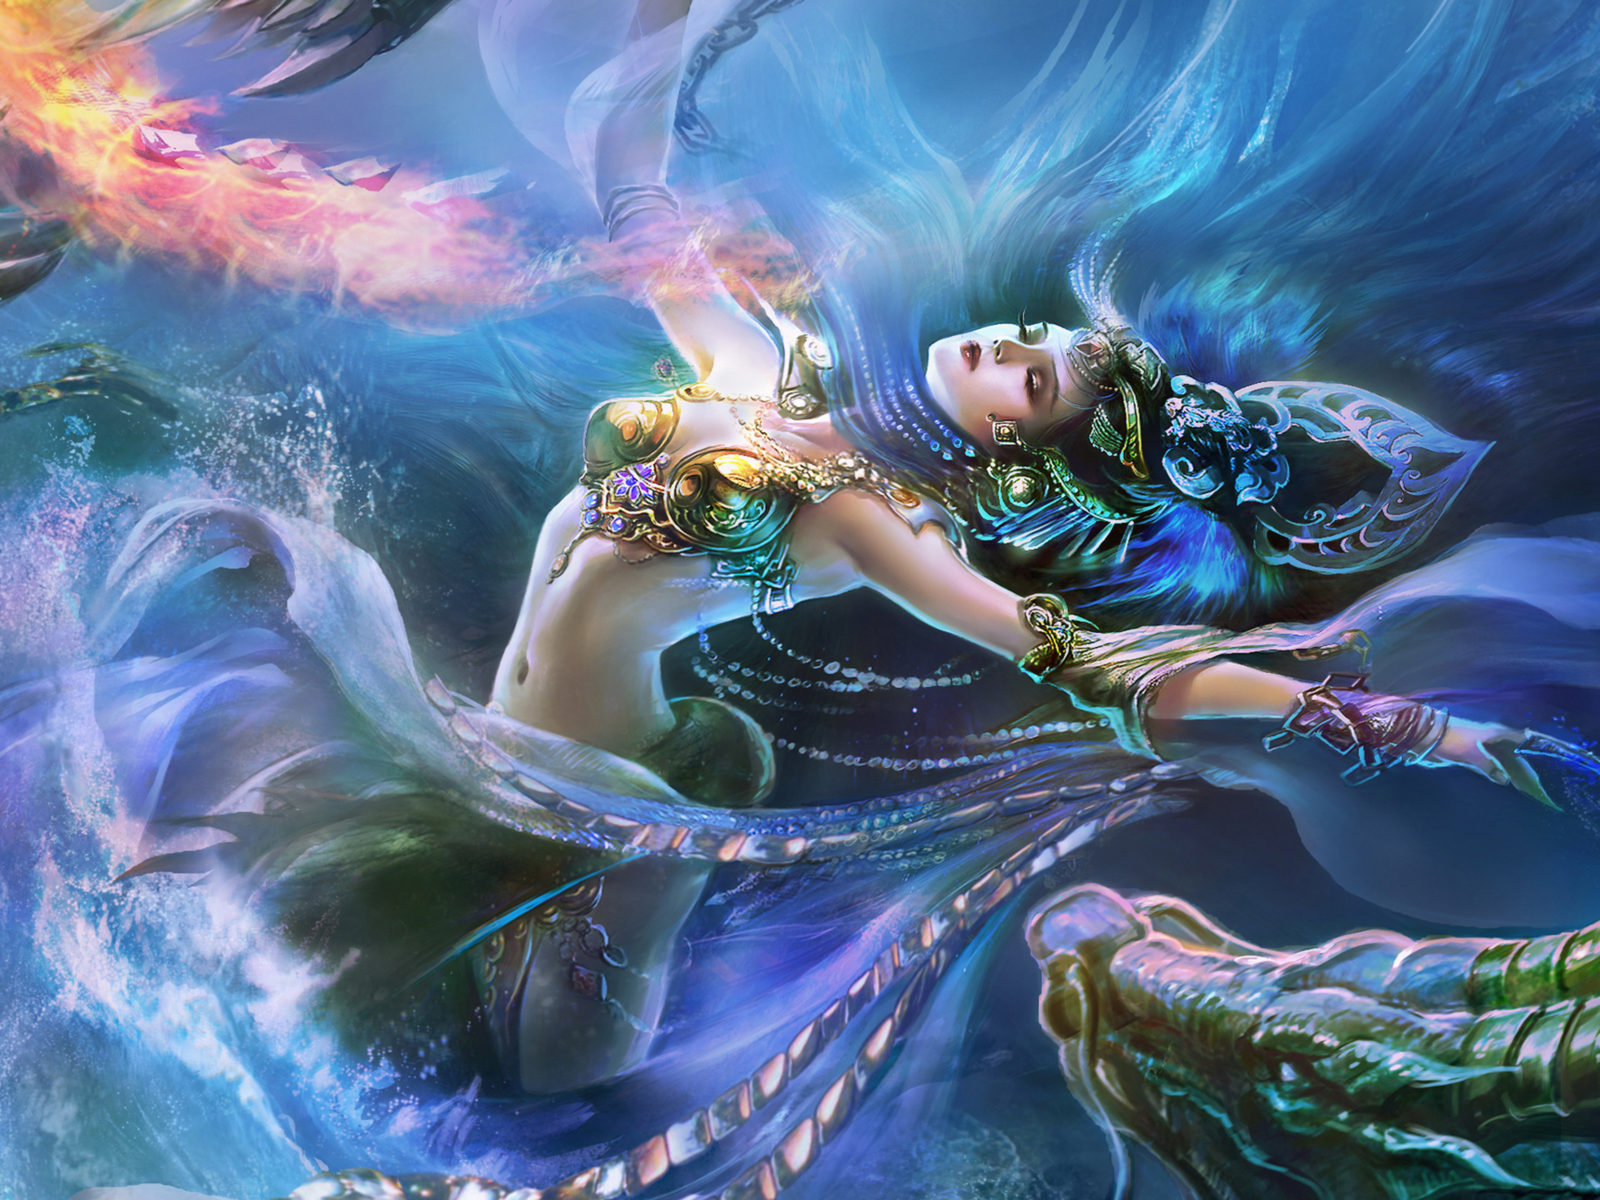 Android Girl Live Wallpaper Fantasy Girl Water And Fire Dragon Jewelry Crown Art